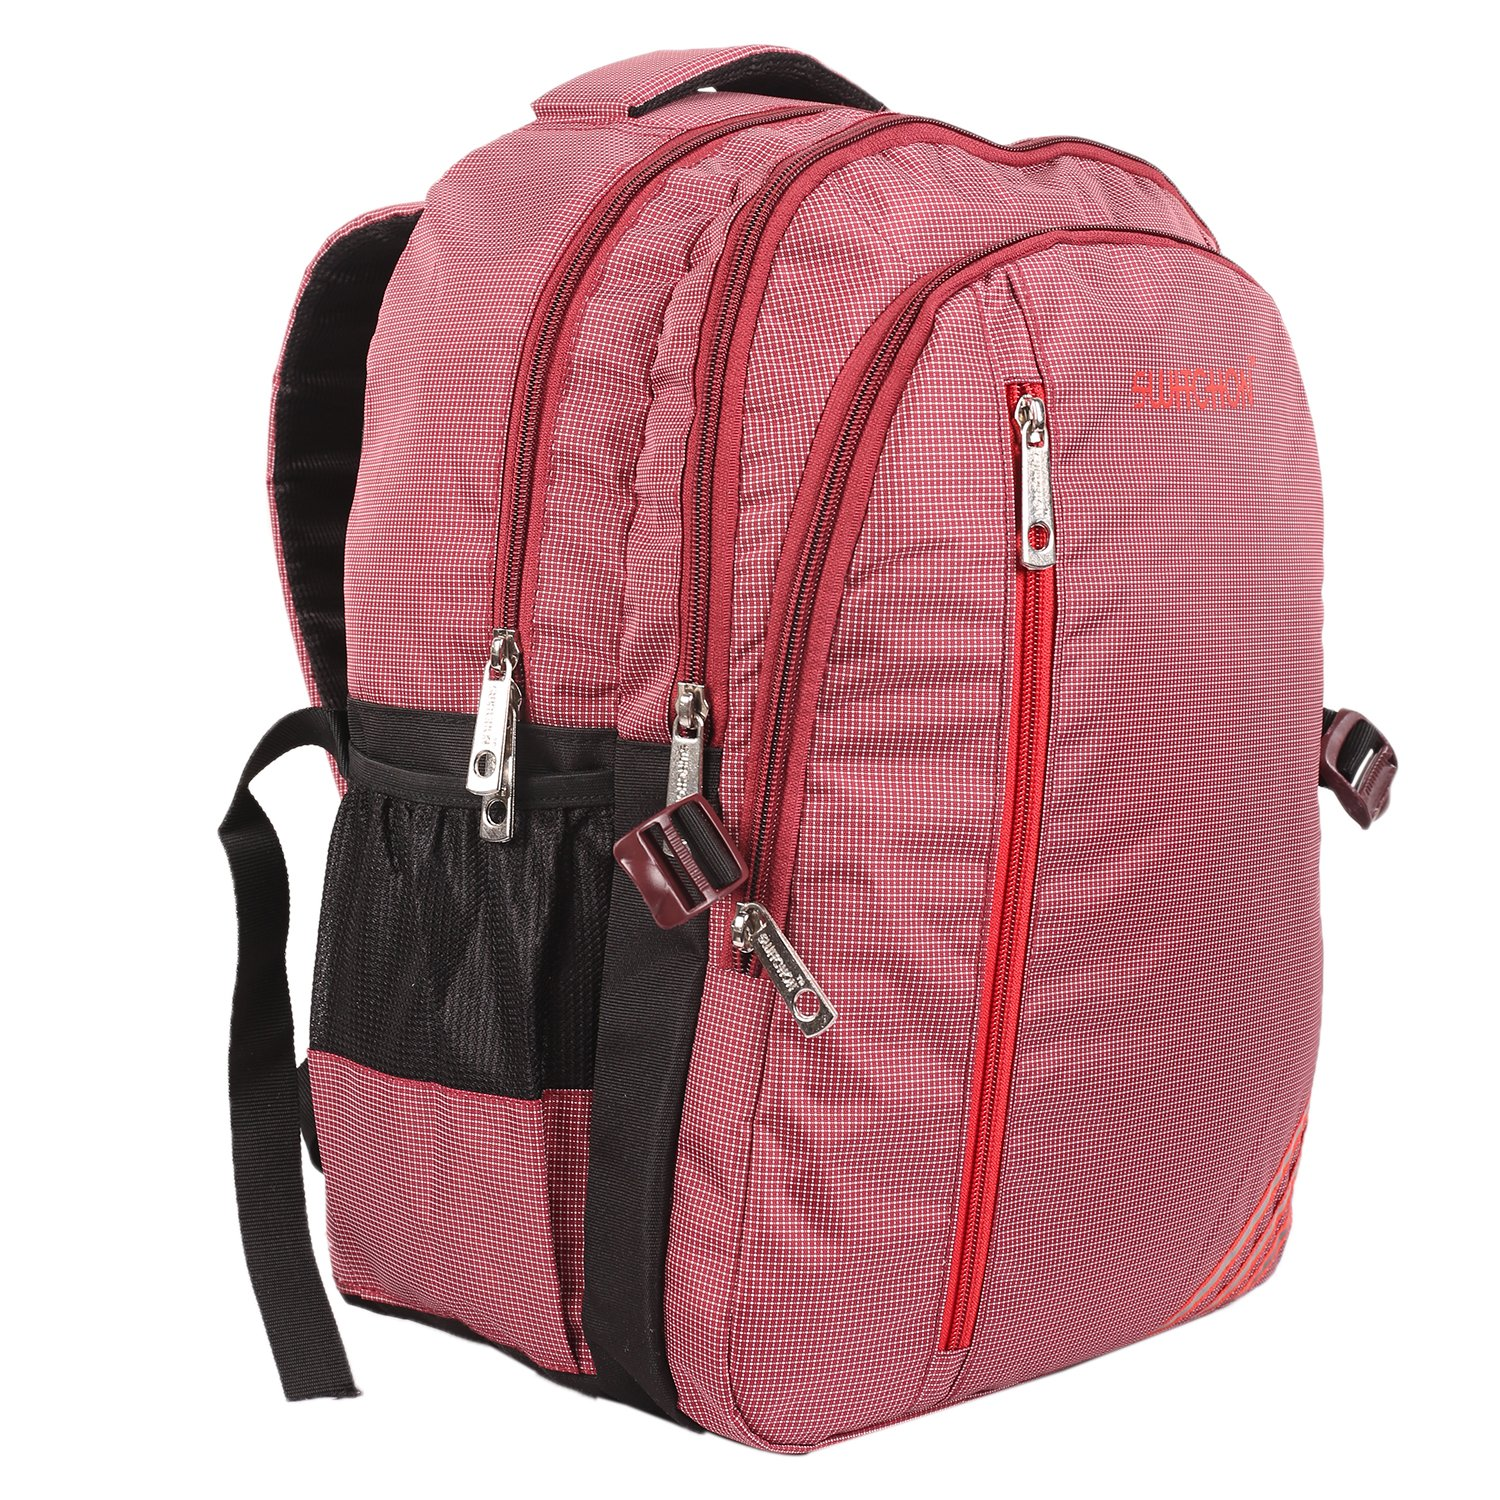 Travalate 32 litres Casual Handbag Backpack Girls   Boys School College Bag  (Pink)  Amazon.in  Bags 5889eec2a7c8b